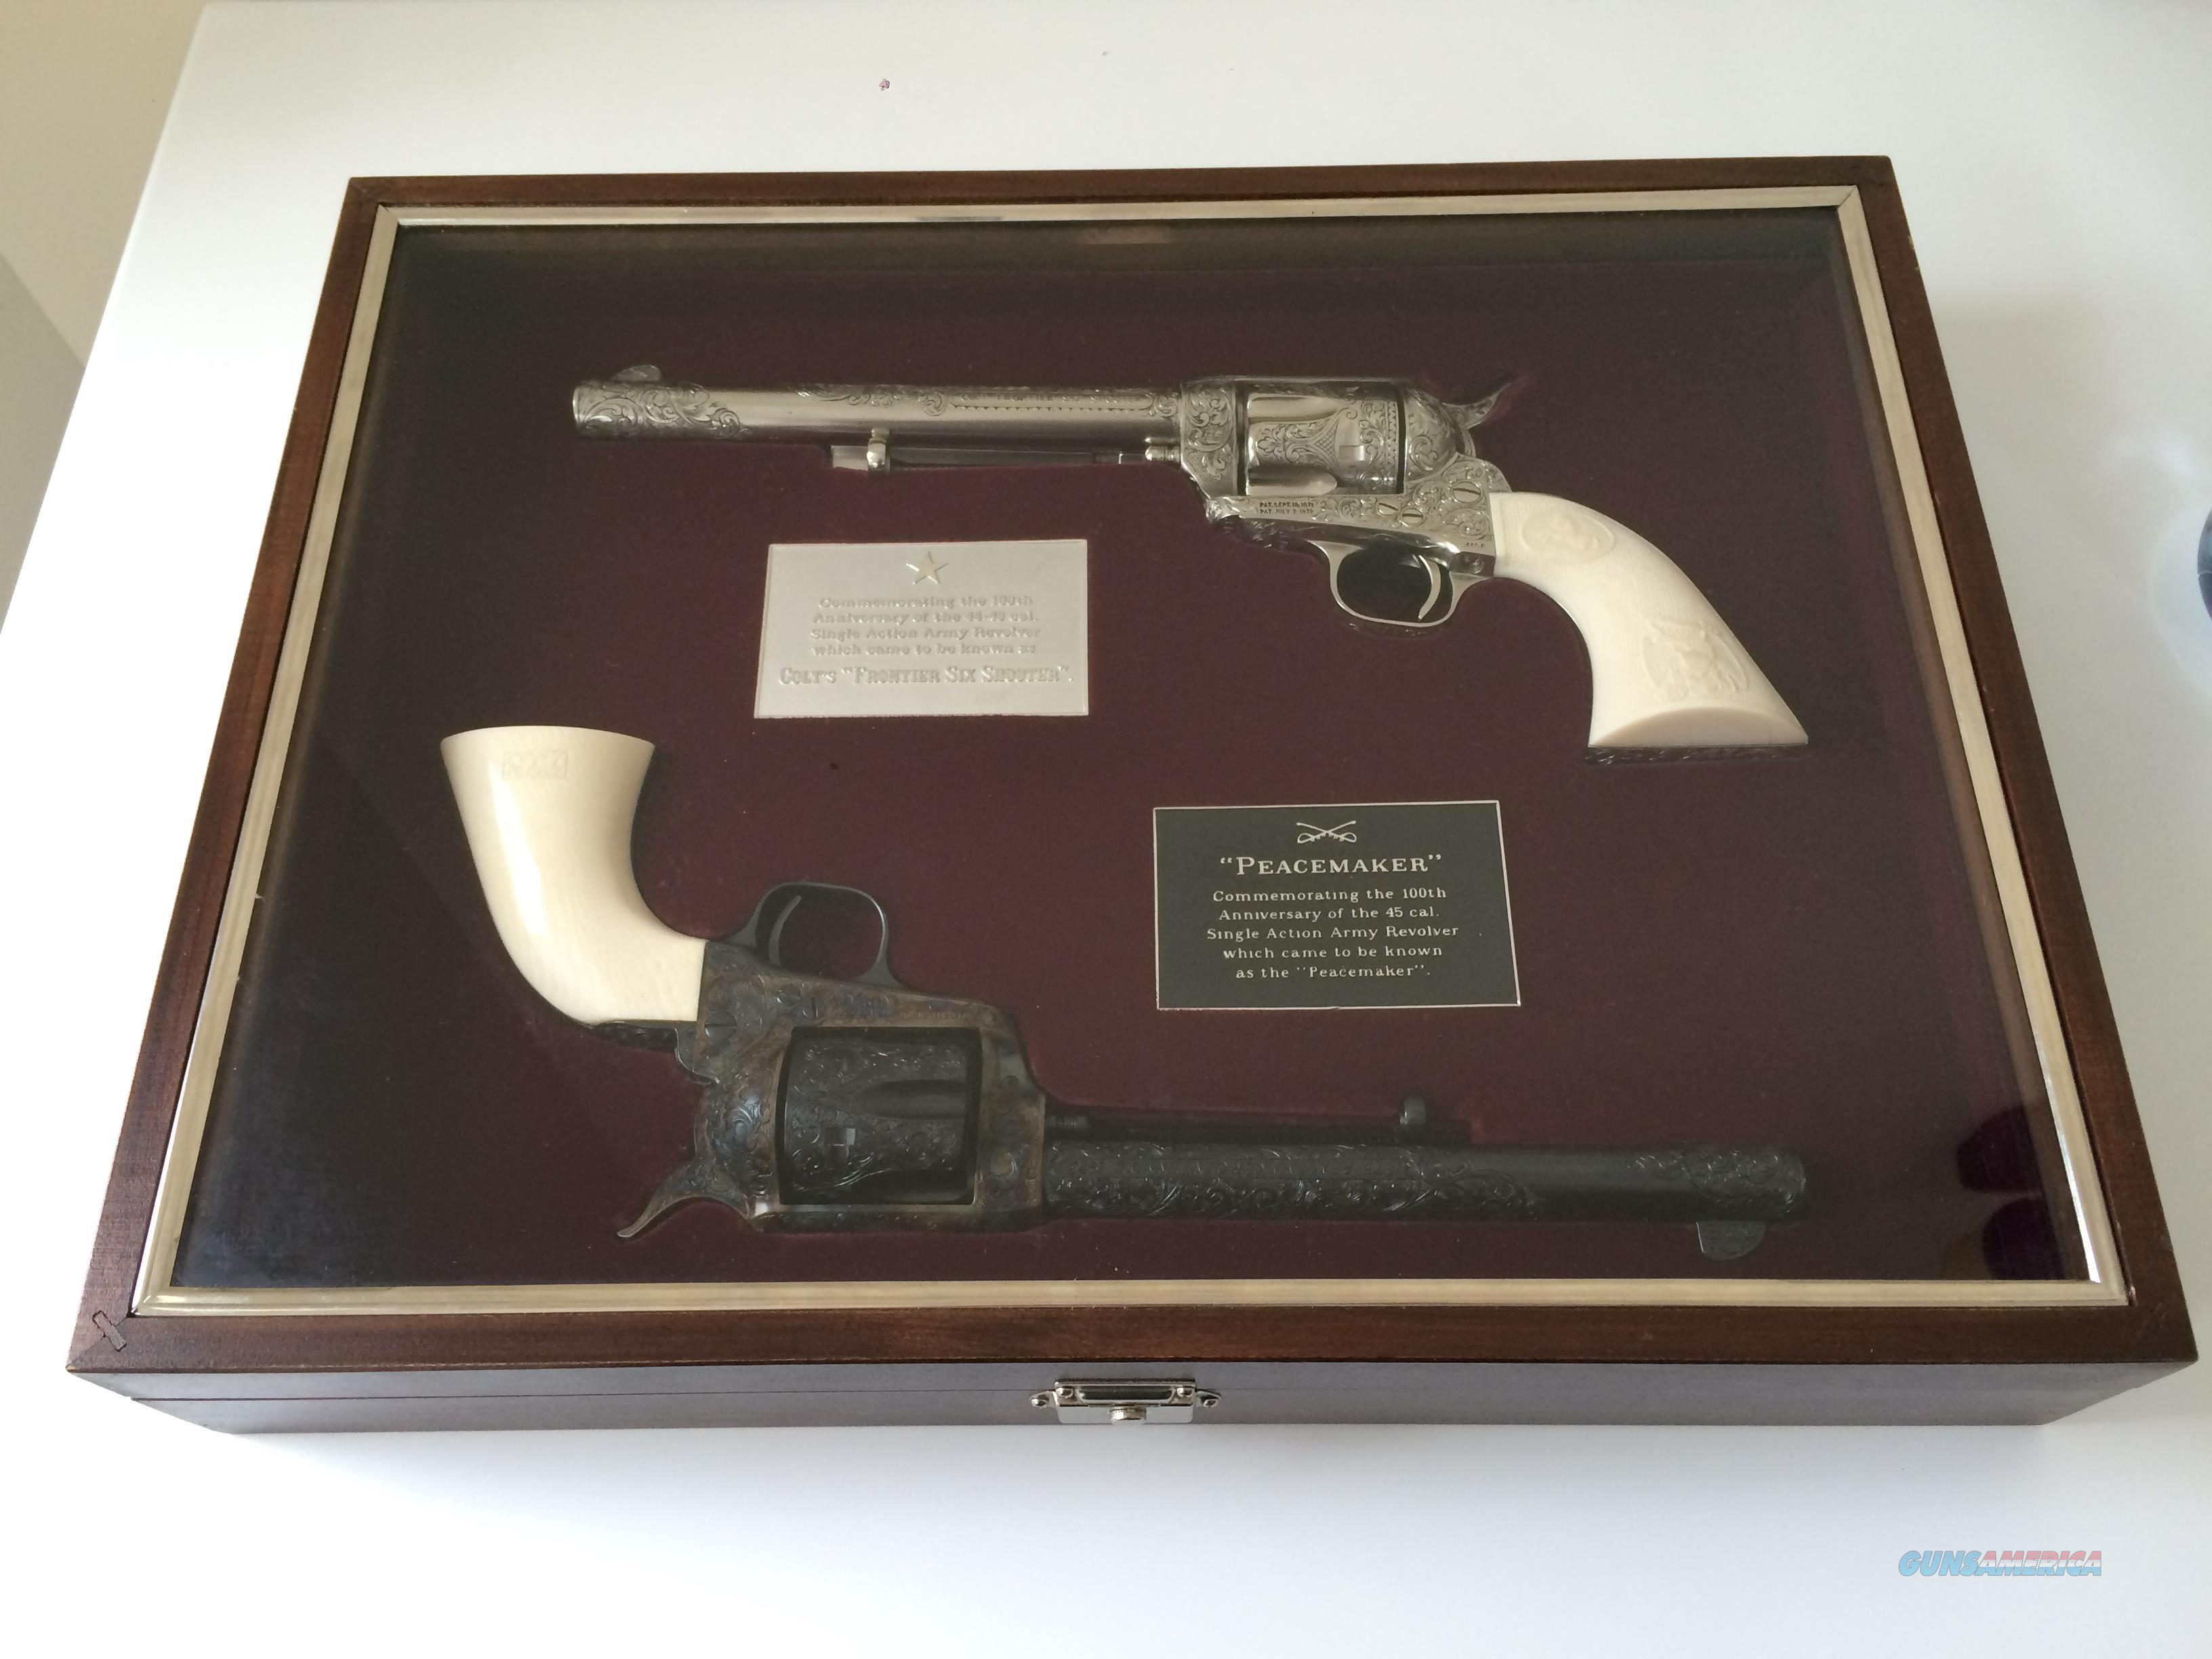 EXQUISITE PAIR OF RARE COMMEMORATIVE 1873-1973 COLT SAA'S  Guns > Pistols > Colt Commemorative Pistols